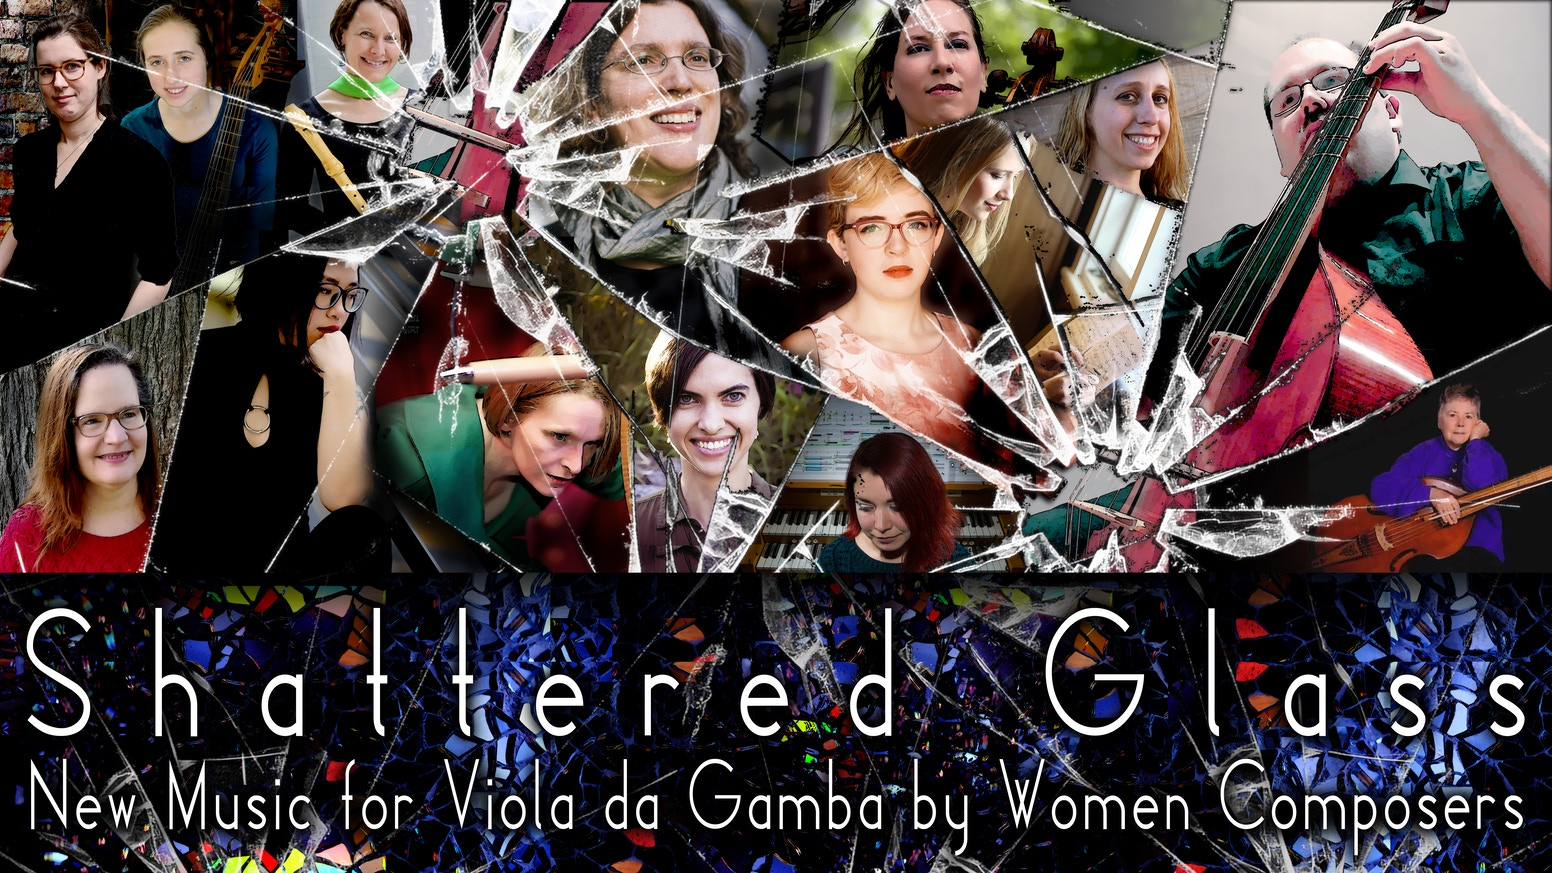 Shattered Glass is a New Music recording featuring by Sarah Angliss, Martha Bishop, Eliza Brown, Alice Chance, Emily Doolittle, Lynn Gumert, Helen He, Malina Rauschenfels, Lauren Redhead, Rebecca Rowe, Heather Spence & Patricia Wallinga.